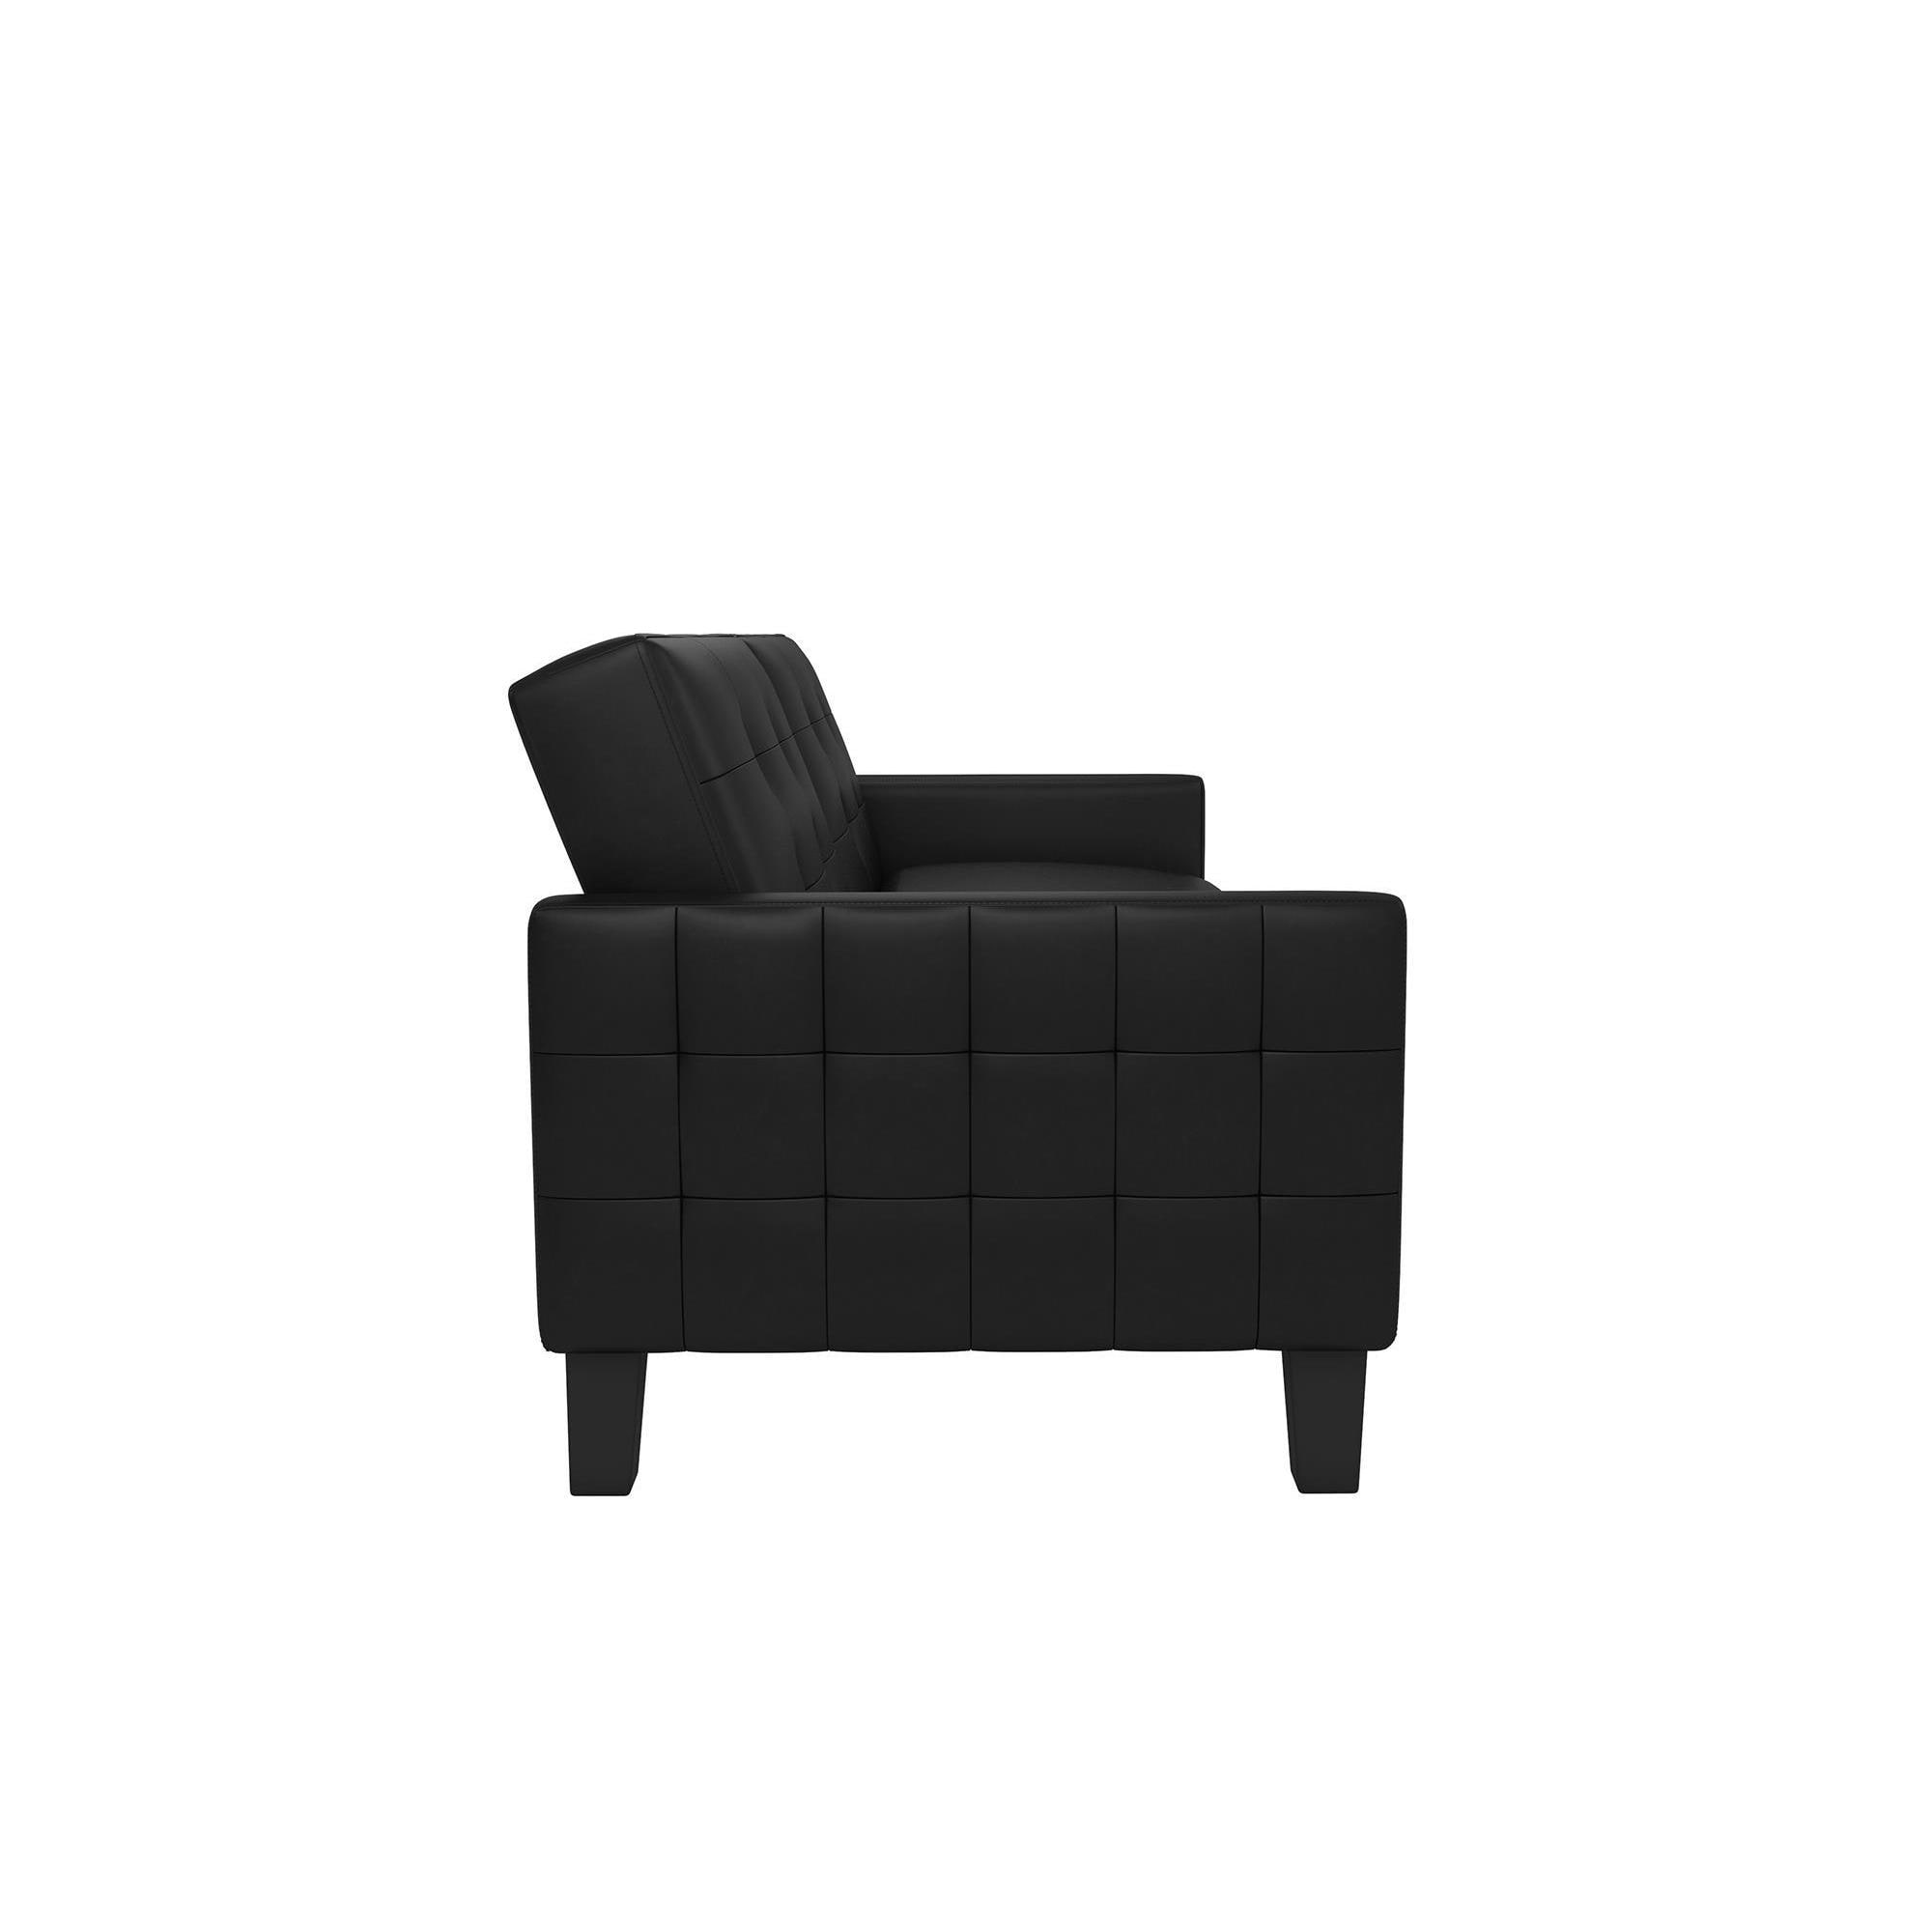 Merveilleux Shop DHP Miller Futon   On Sale   Free Shipping Today   Overstock.com    16341221